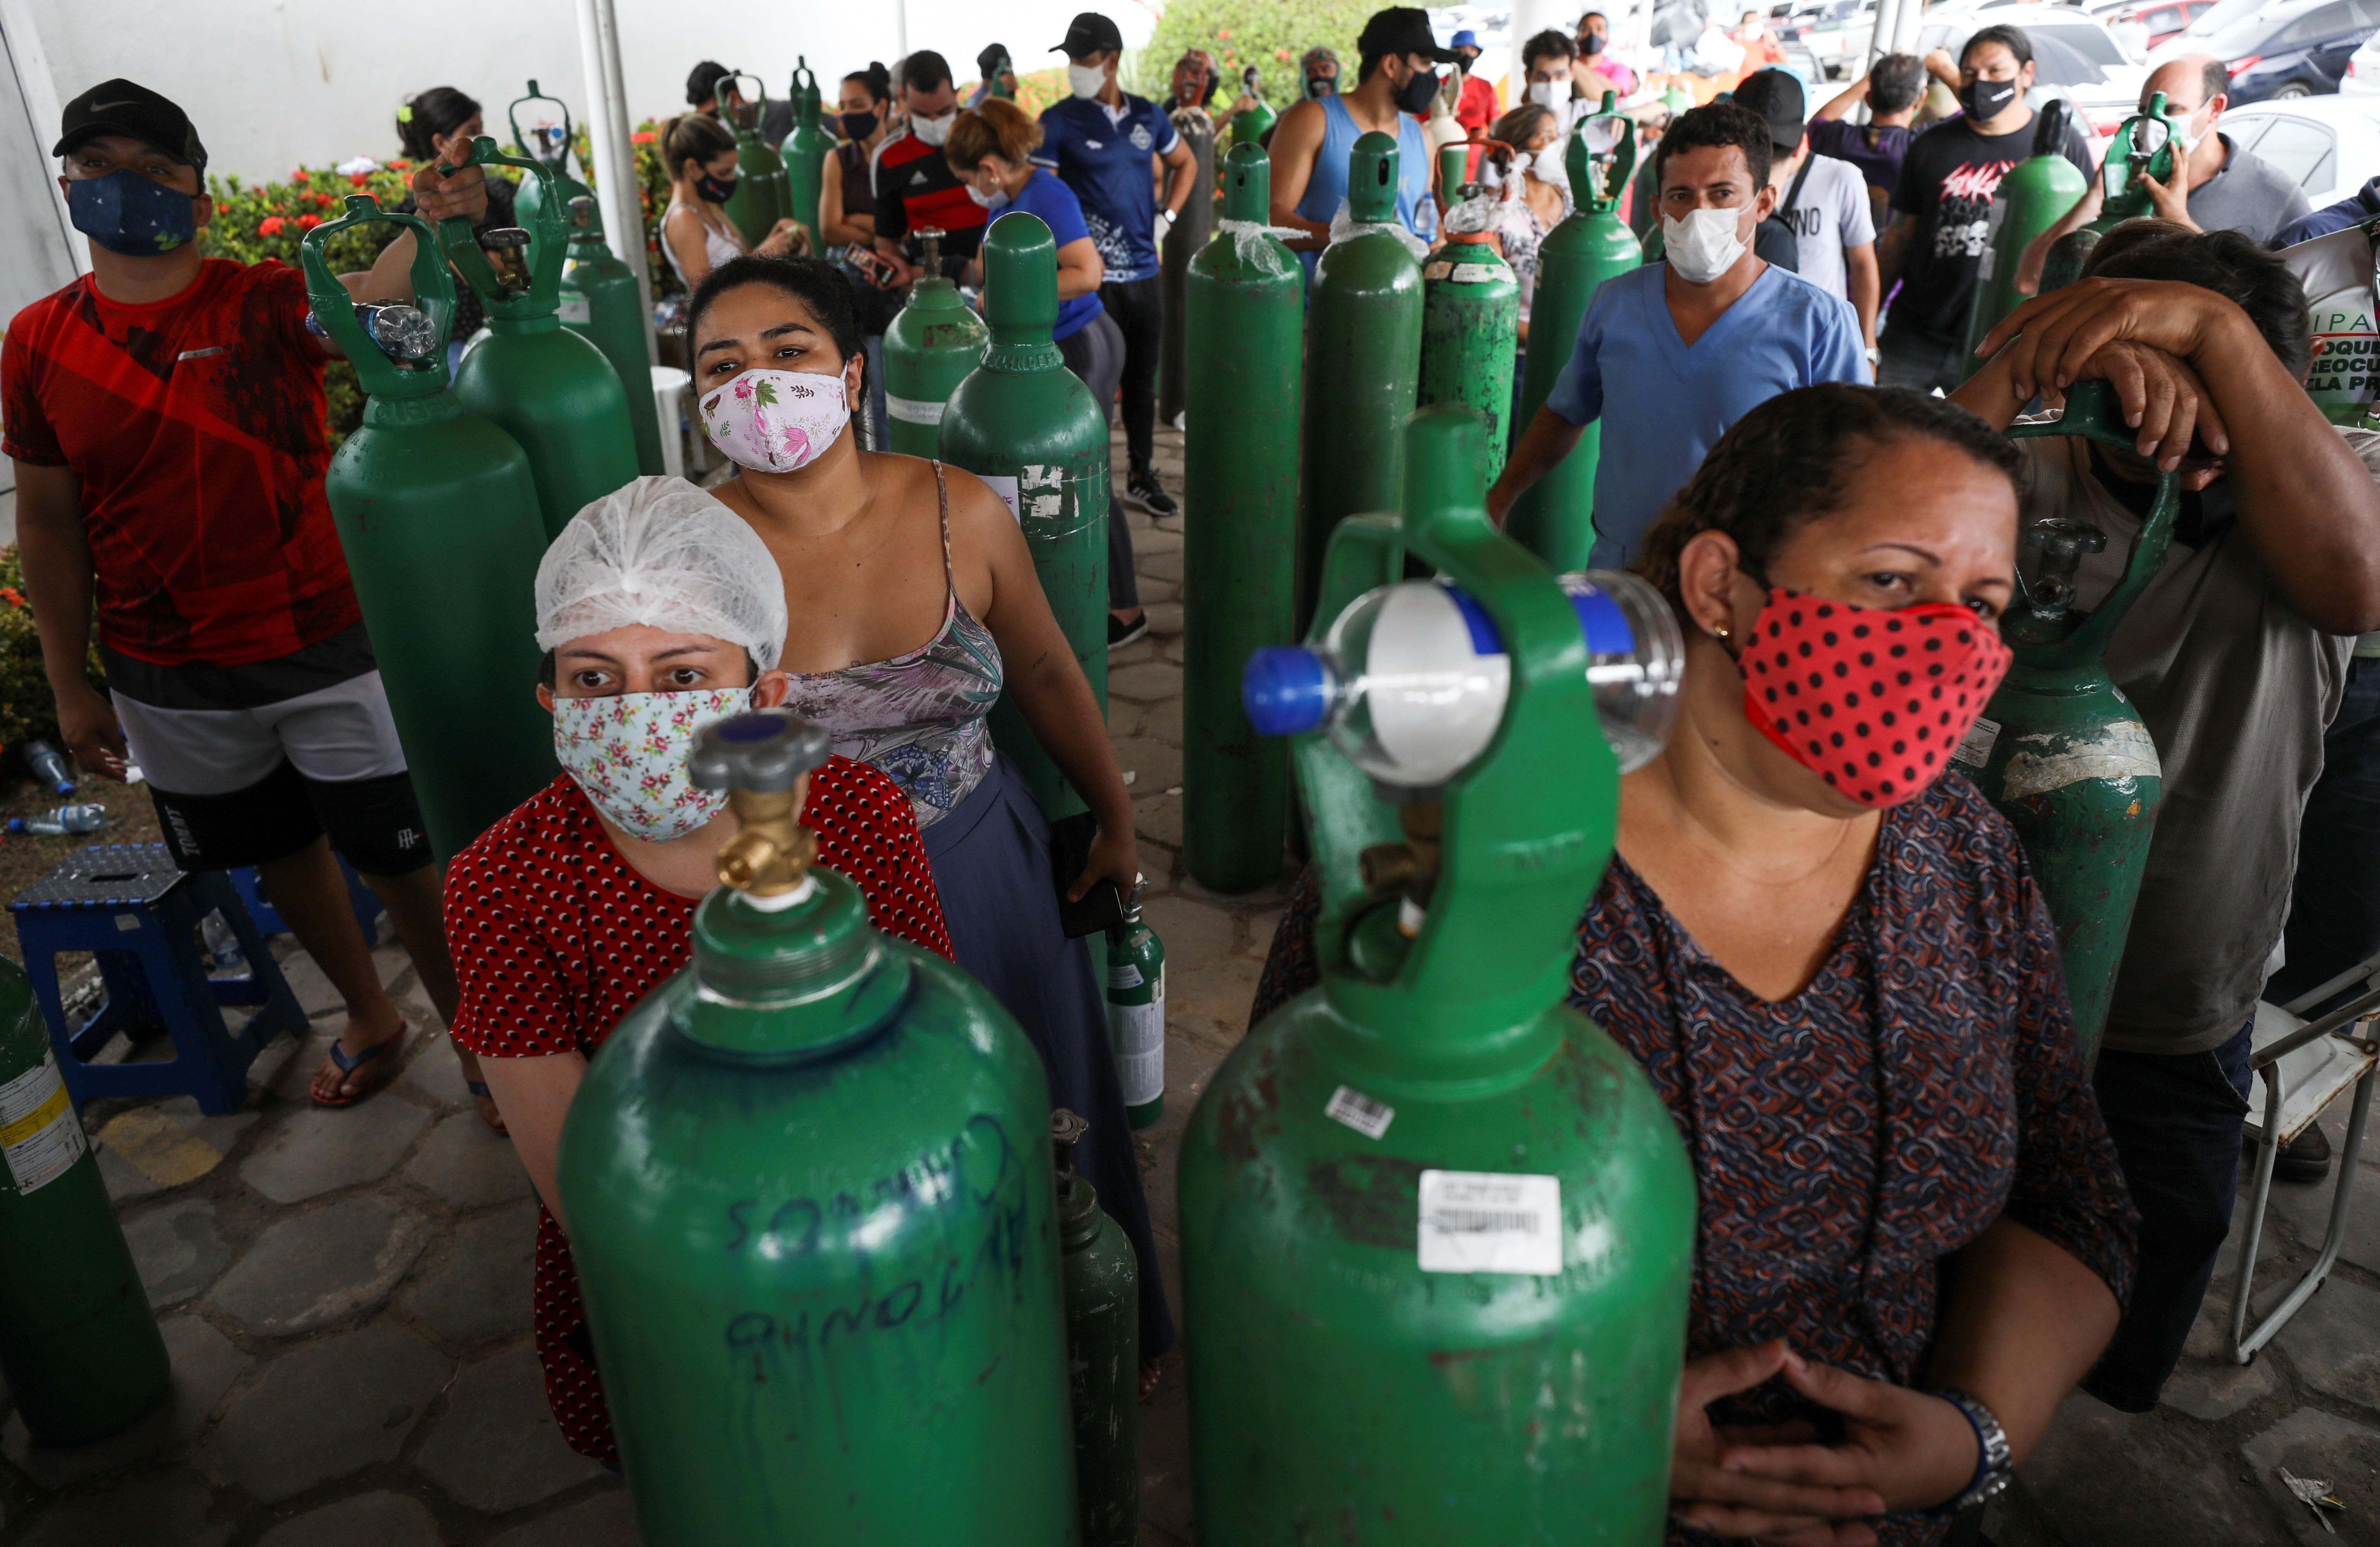 Relatives of COVID patients gather to buy oxygen in Manaus, Brazil. REUTERS/Bruno Kelly